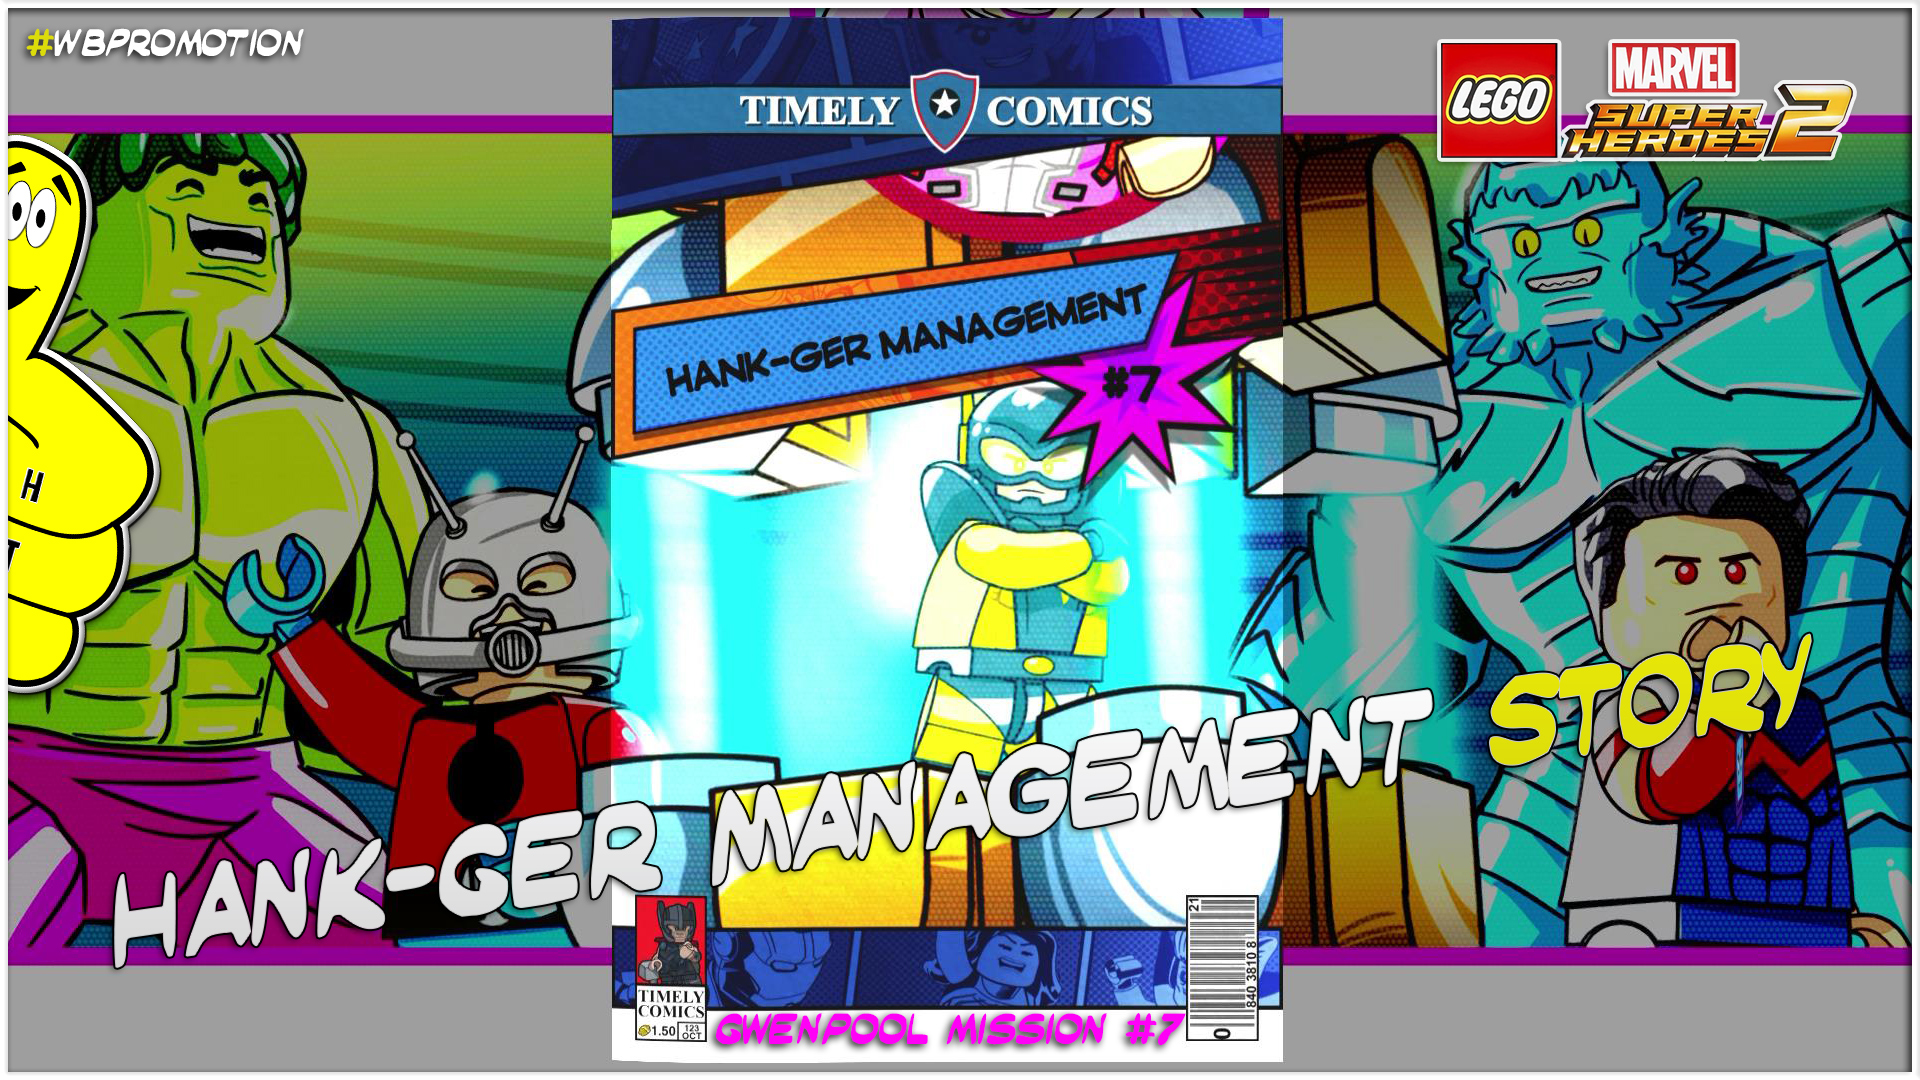 Lego Marvel Superheroes 2: Gwenpool Mission 7 / Hank-ger Management STORY – HTG